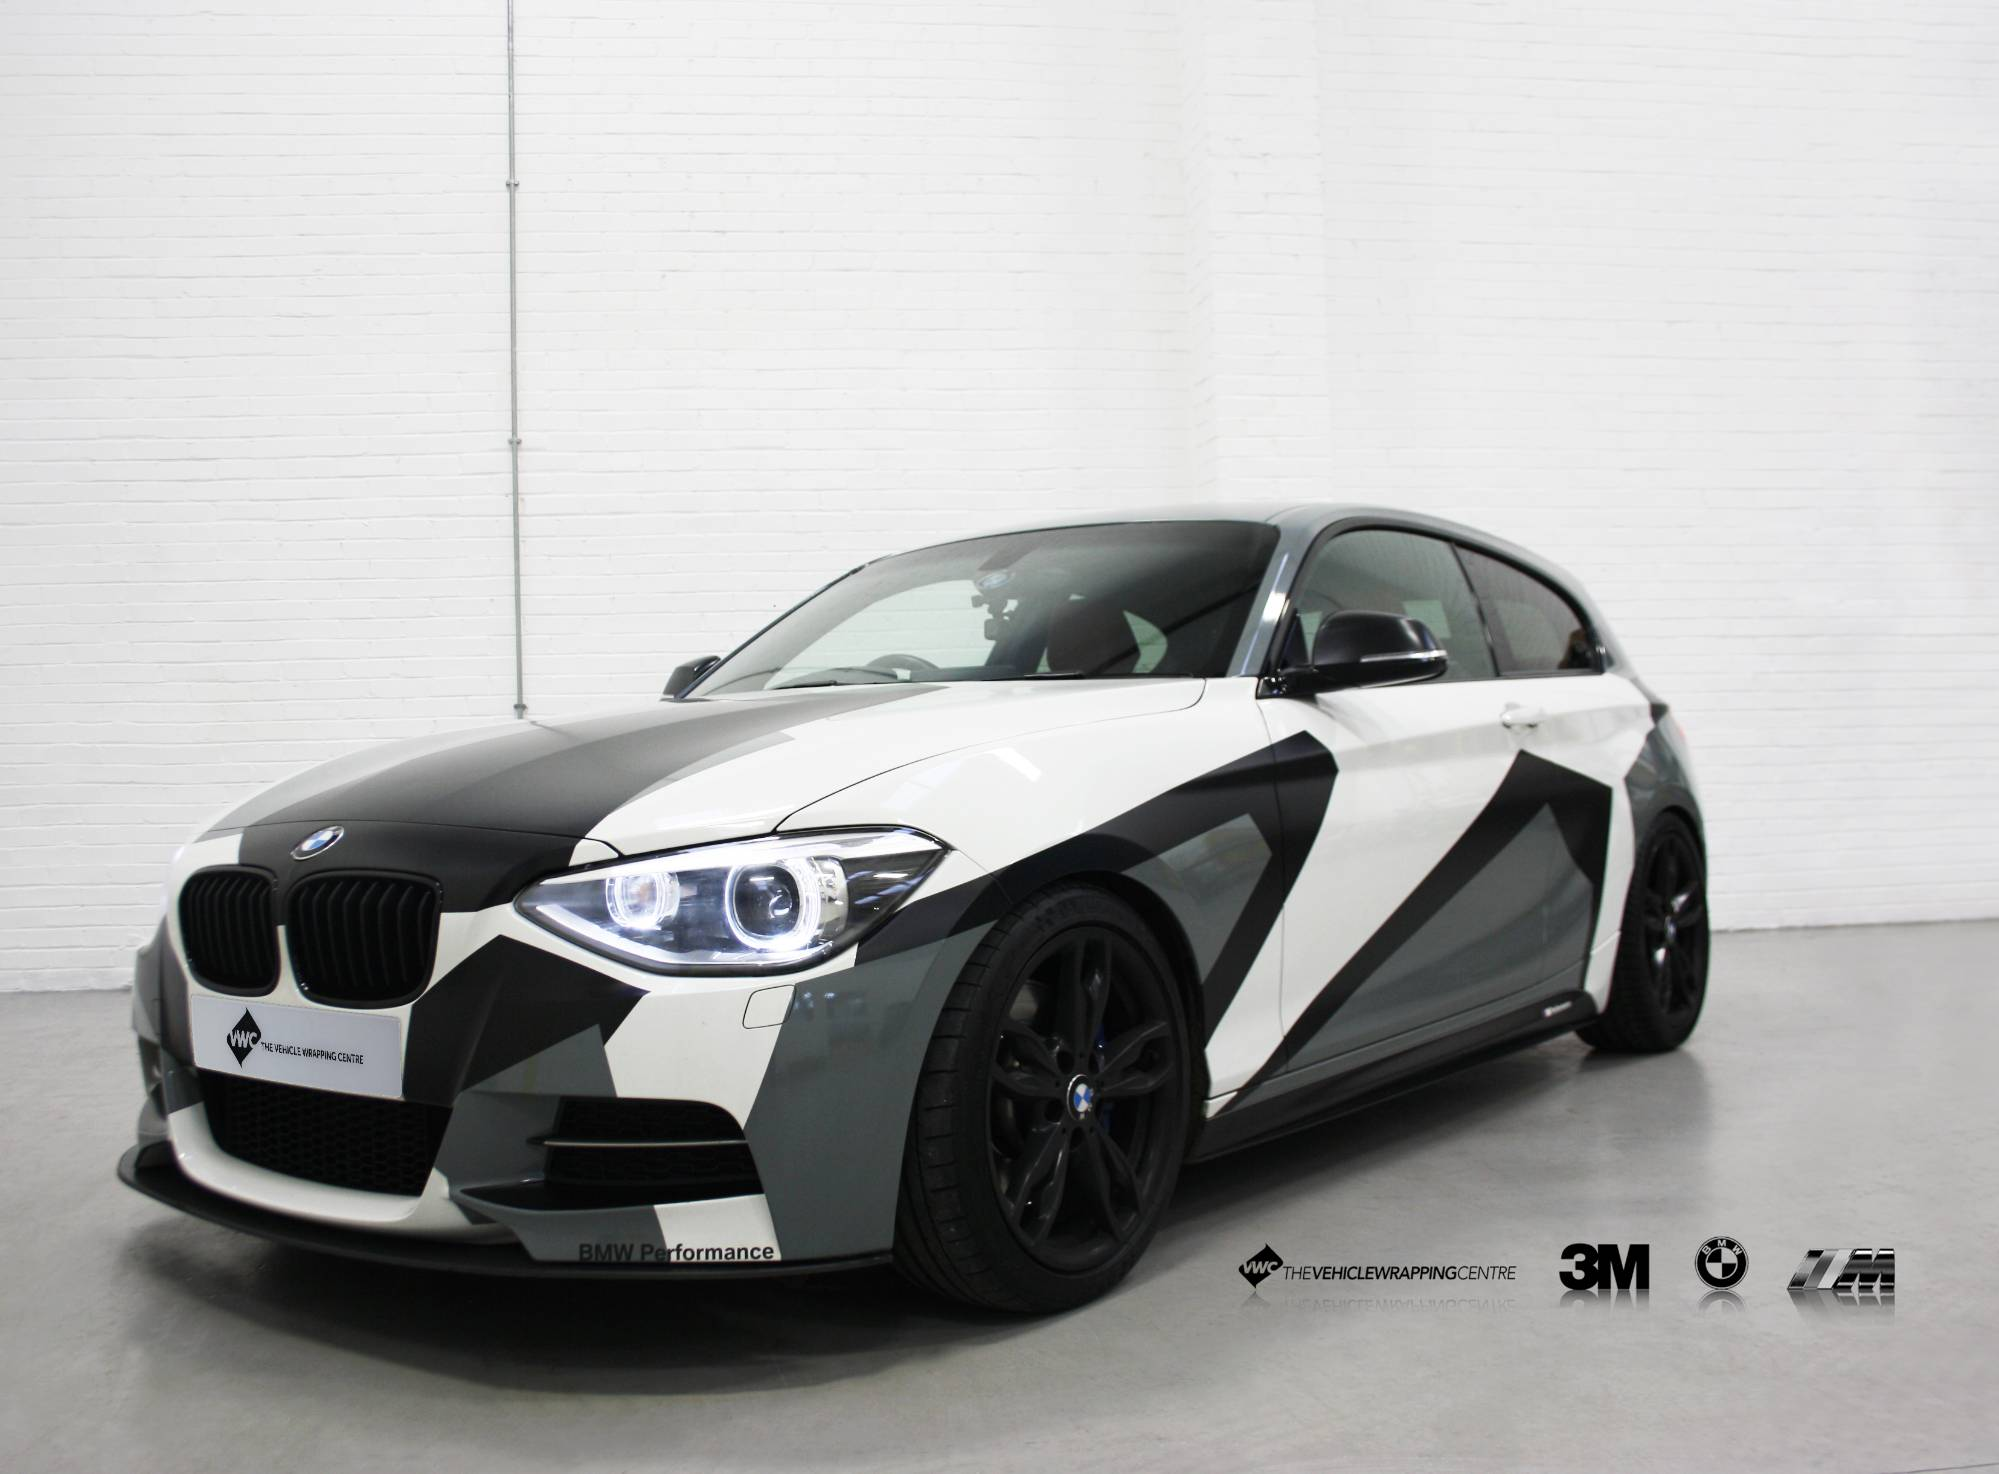 Bmw M135i Camo Personal Vehicle Wrap Project